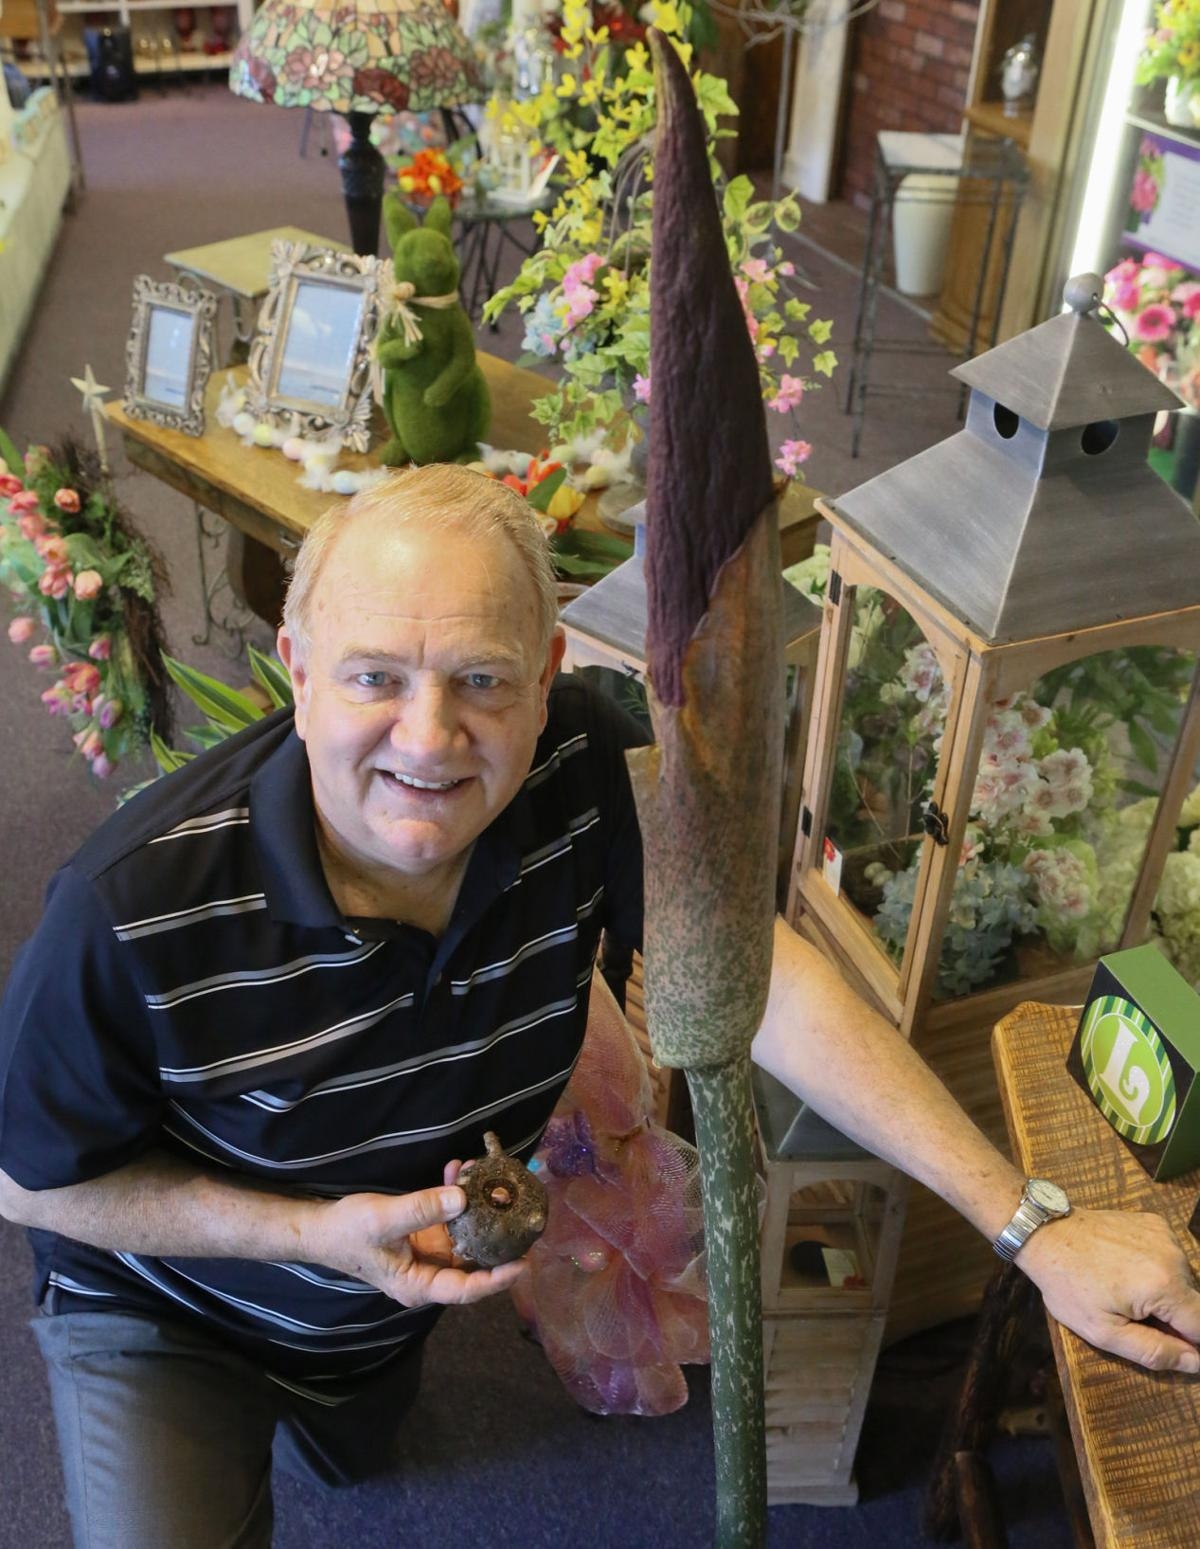 Bob Dixon has been growing the Corpse Flower for 30 years.